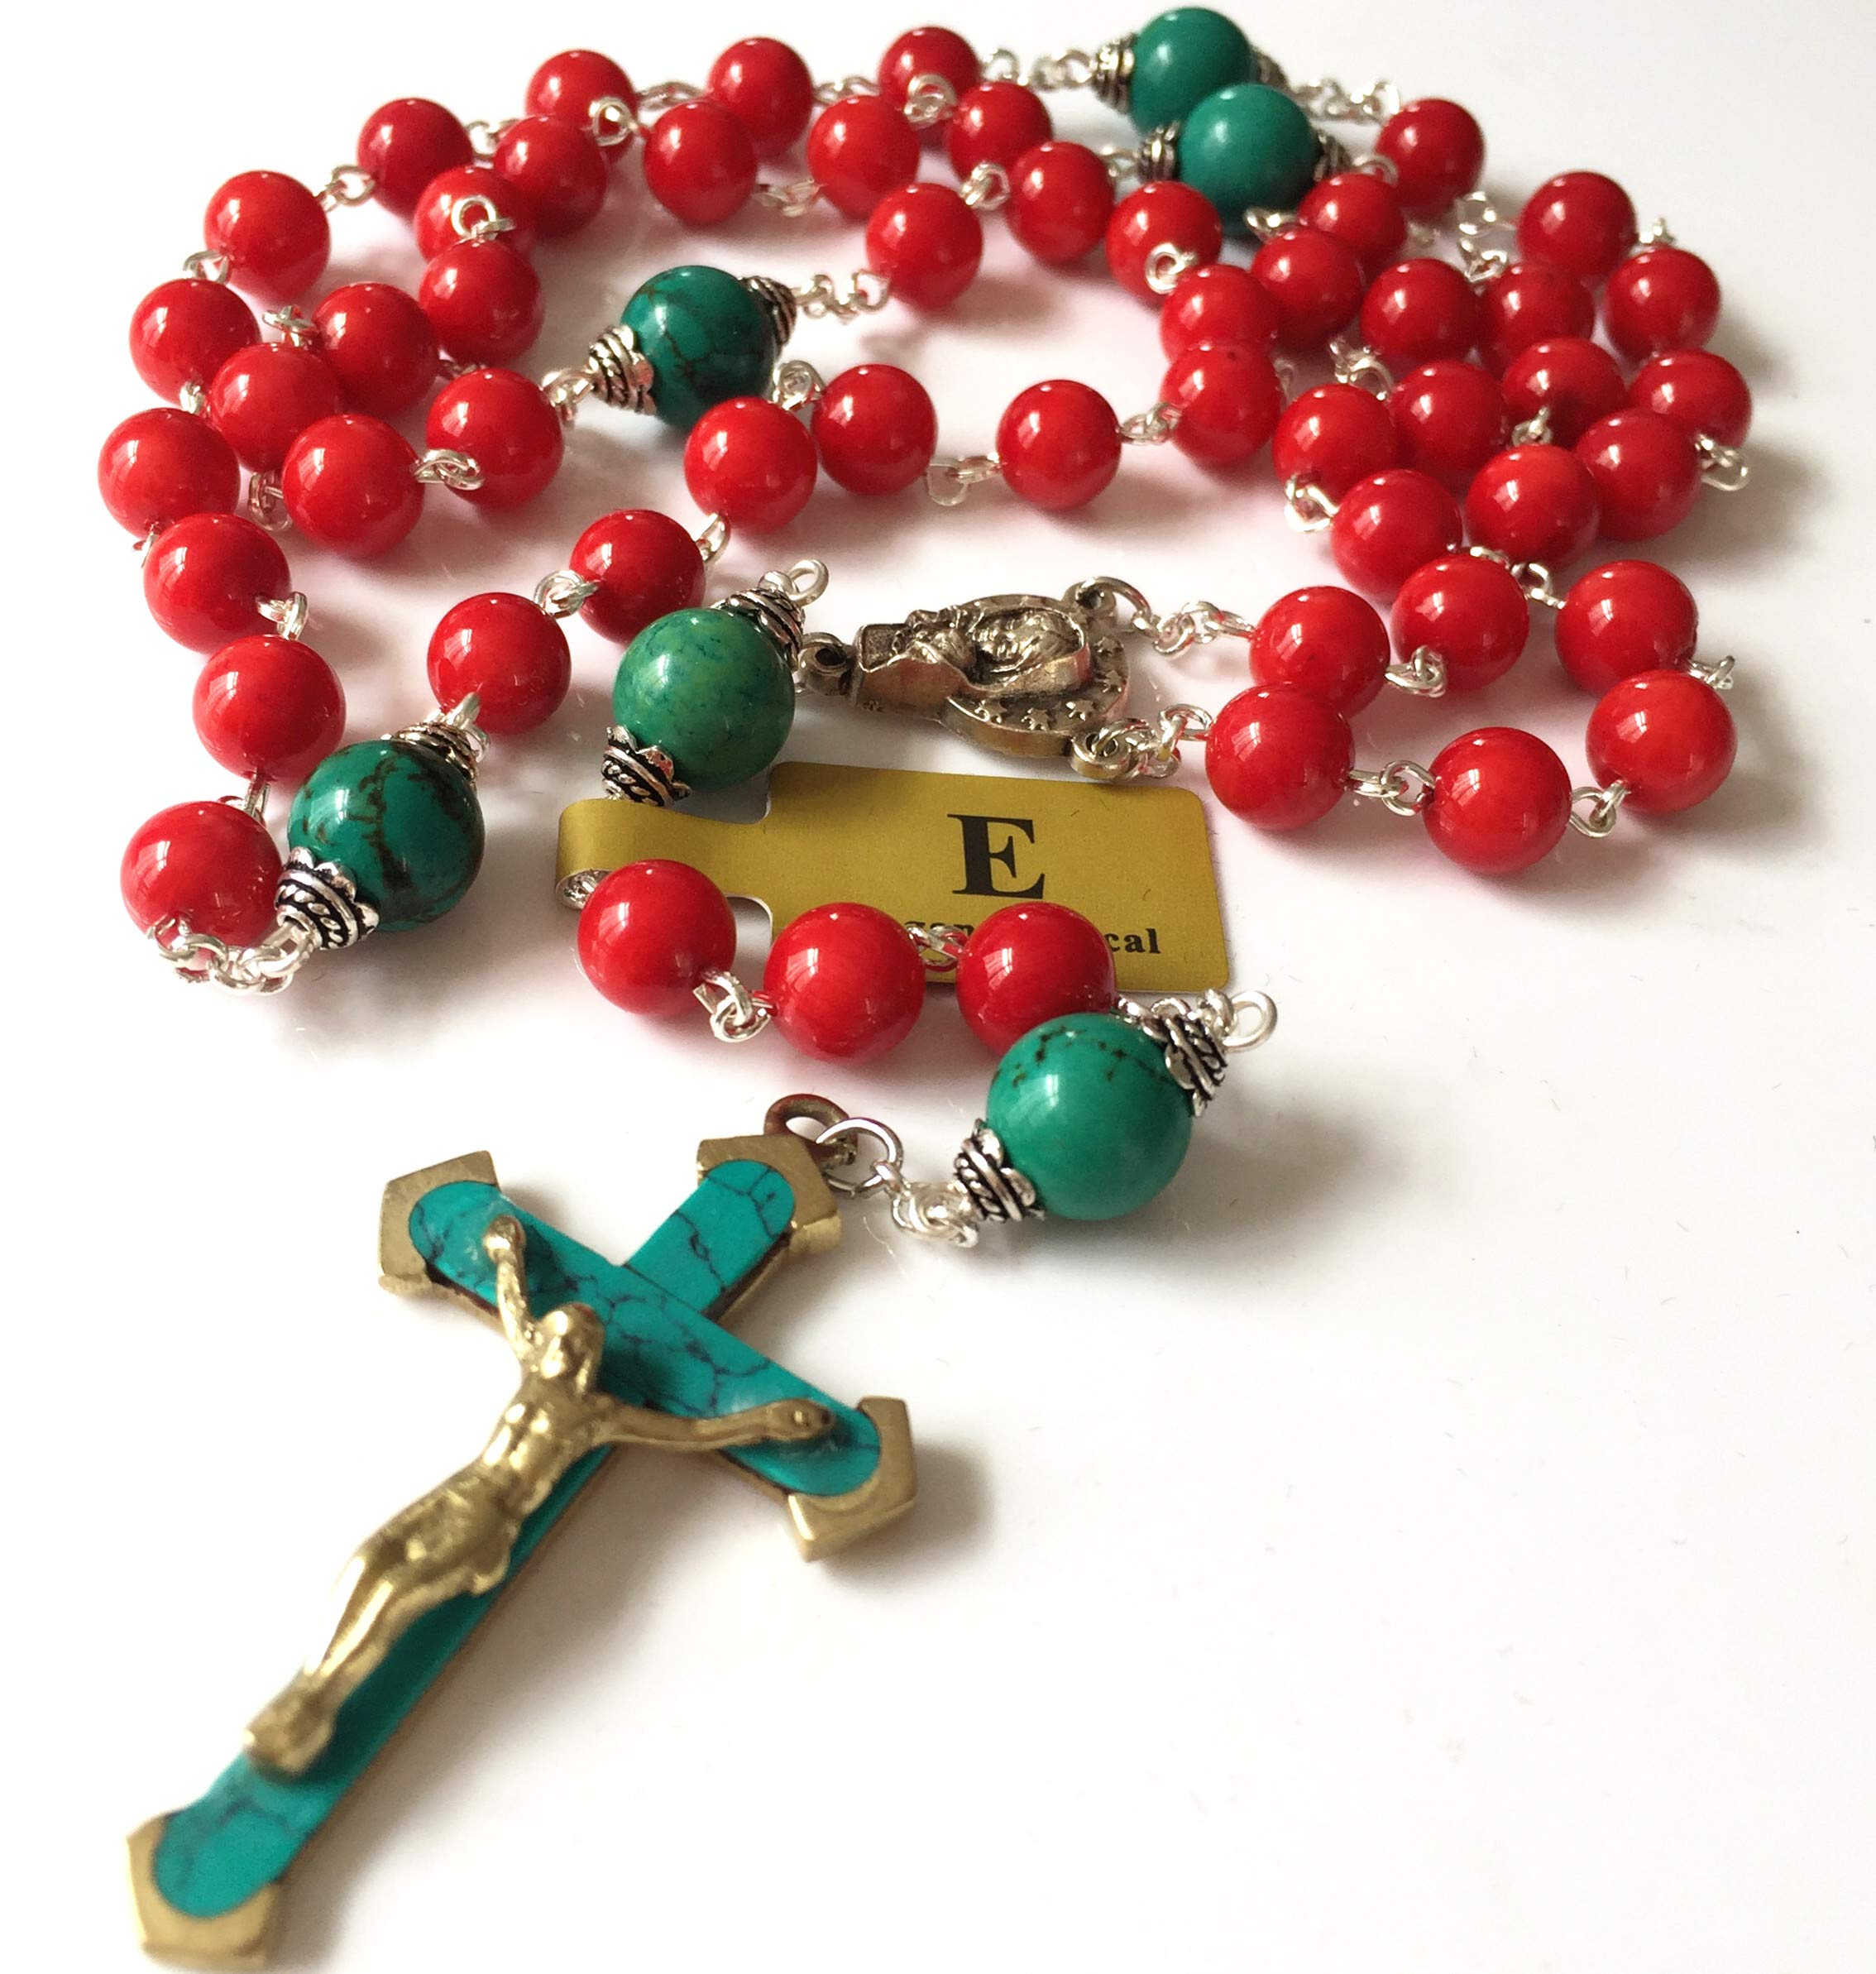 elegantmedical Handmade Turquoise & Red Coral Beads Rosary & Turquoise Cross Crucifix Necklace Catholic Gifts